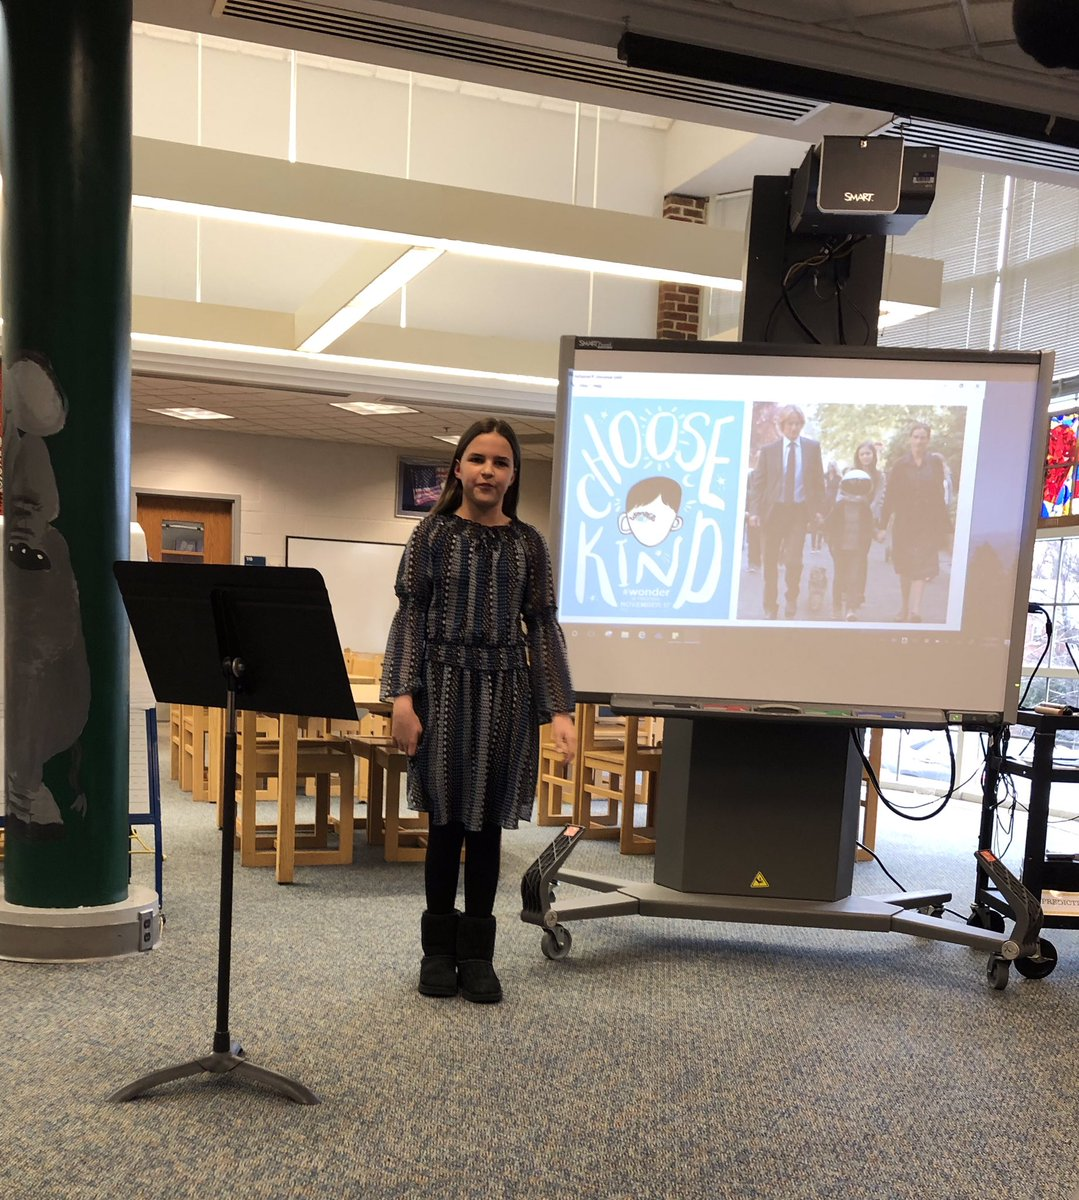 Today the first round of TED-Ed Club participants shared their presentations and they were spectacular! Bravo!  <a target='_blank' href='http://search.twitter.com/search?q=TEDEdClubs'><a target='_blank' href='https://twitter.com/hashtag/TEDEdClubs?src=hash'>#TEDEdClubs</a></a> <a target='_blank' href='http://search.twitter.com/search?q=ATSLearns'><a target='_blank' href='https://twitter.com/hashtag/ATSLearns?src=hash'>#ATSLearns</a></a> <a target='_blank' href='https://t.co/Ar5iaxEQUB'>https://t.co/Ar5iaxEQUB</a>